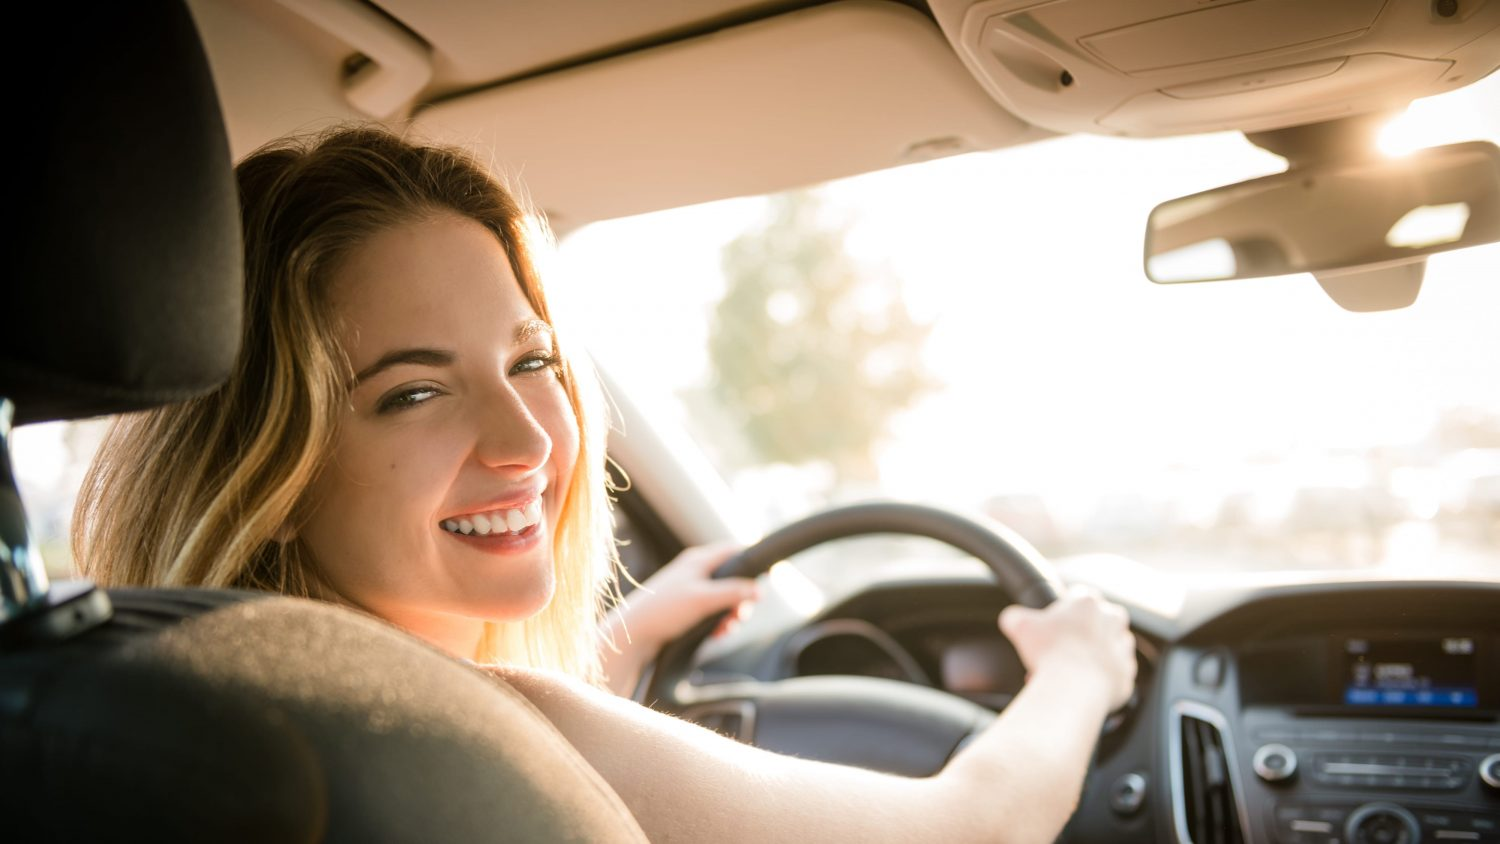 How BACtrack View Can Help You with Your Teen Driver